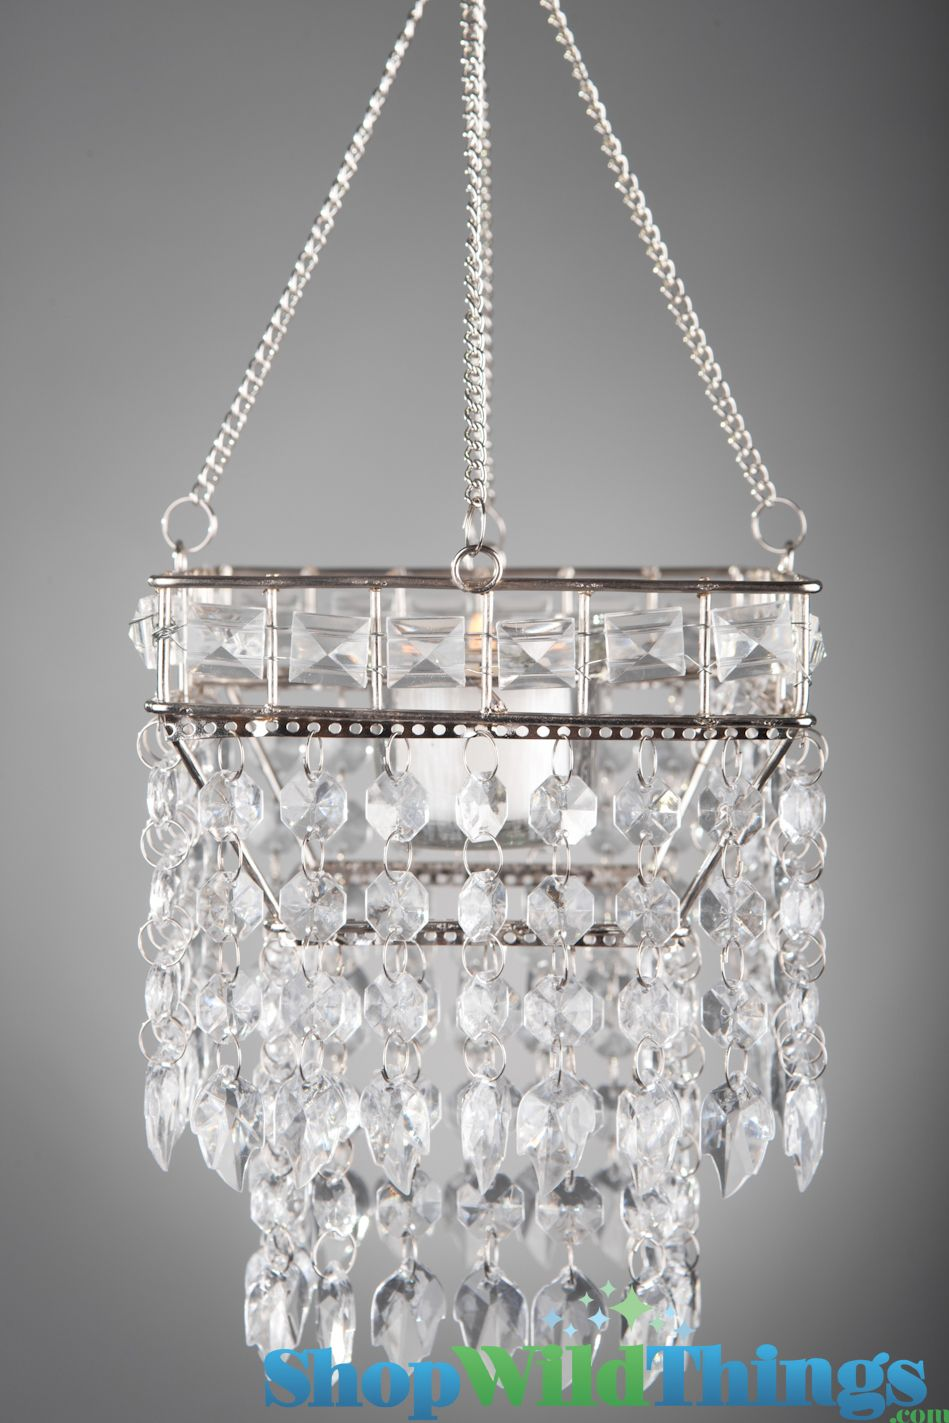 Hanging beaded candle holder noor 5 square decor pinterest youll love this large beaded hanging chandelier it holds one glass cup that can accommodate 1 tealight or short votive candle arubaitofo Gallery